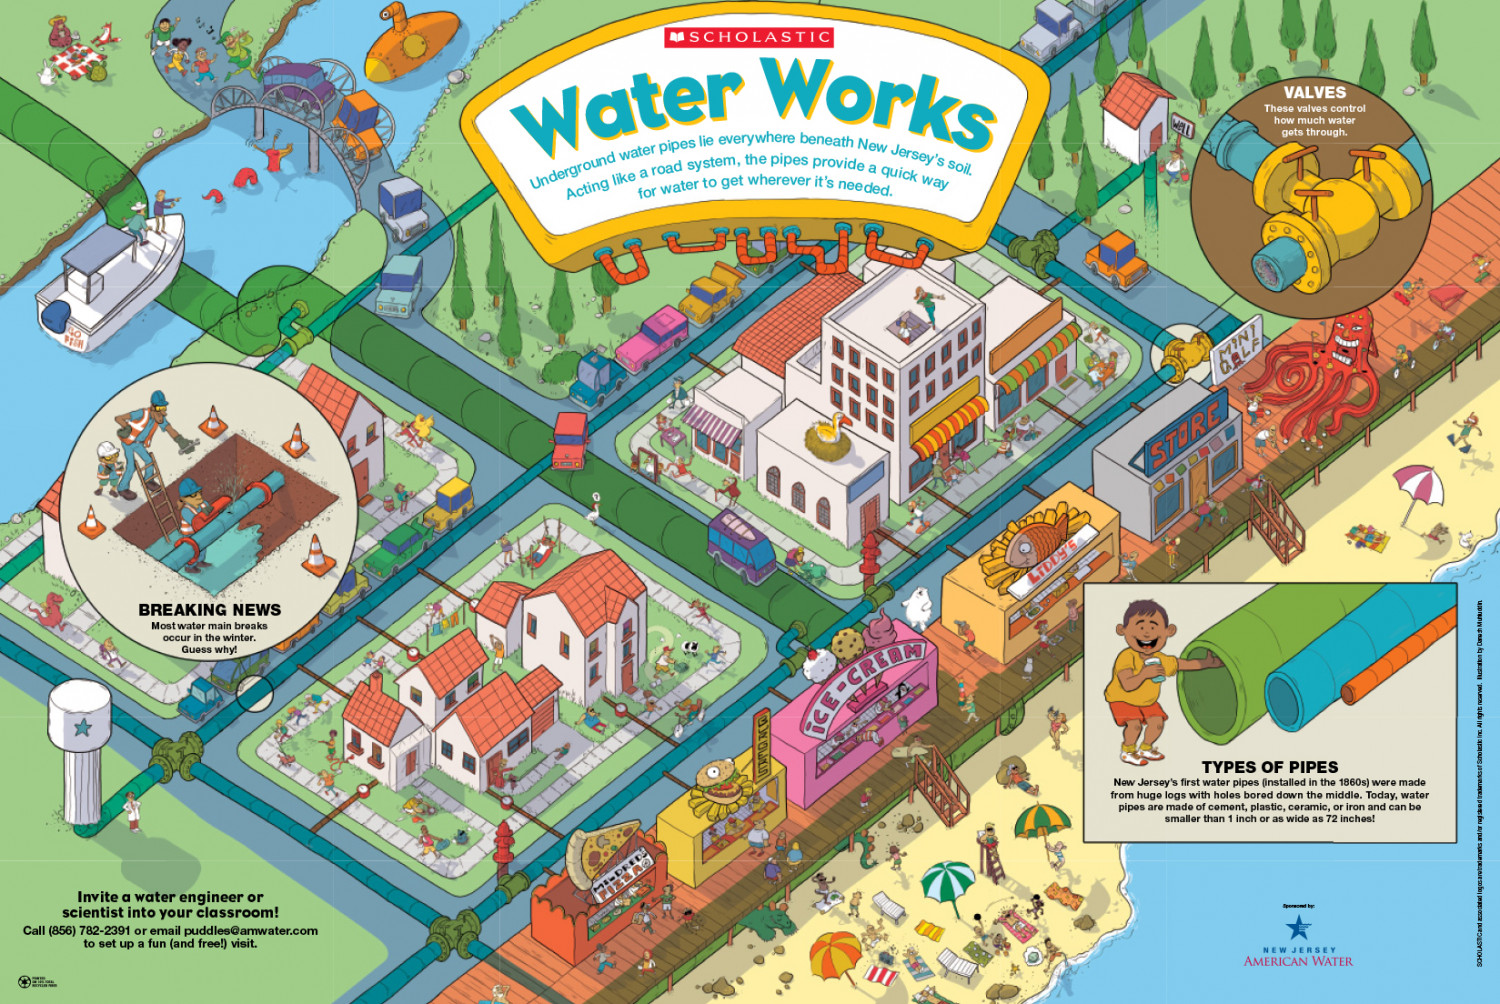 Underground Water Pipes in New Jersey Infographic